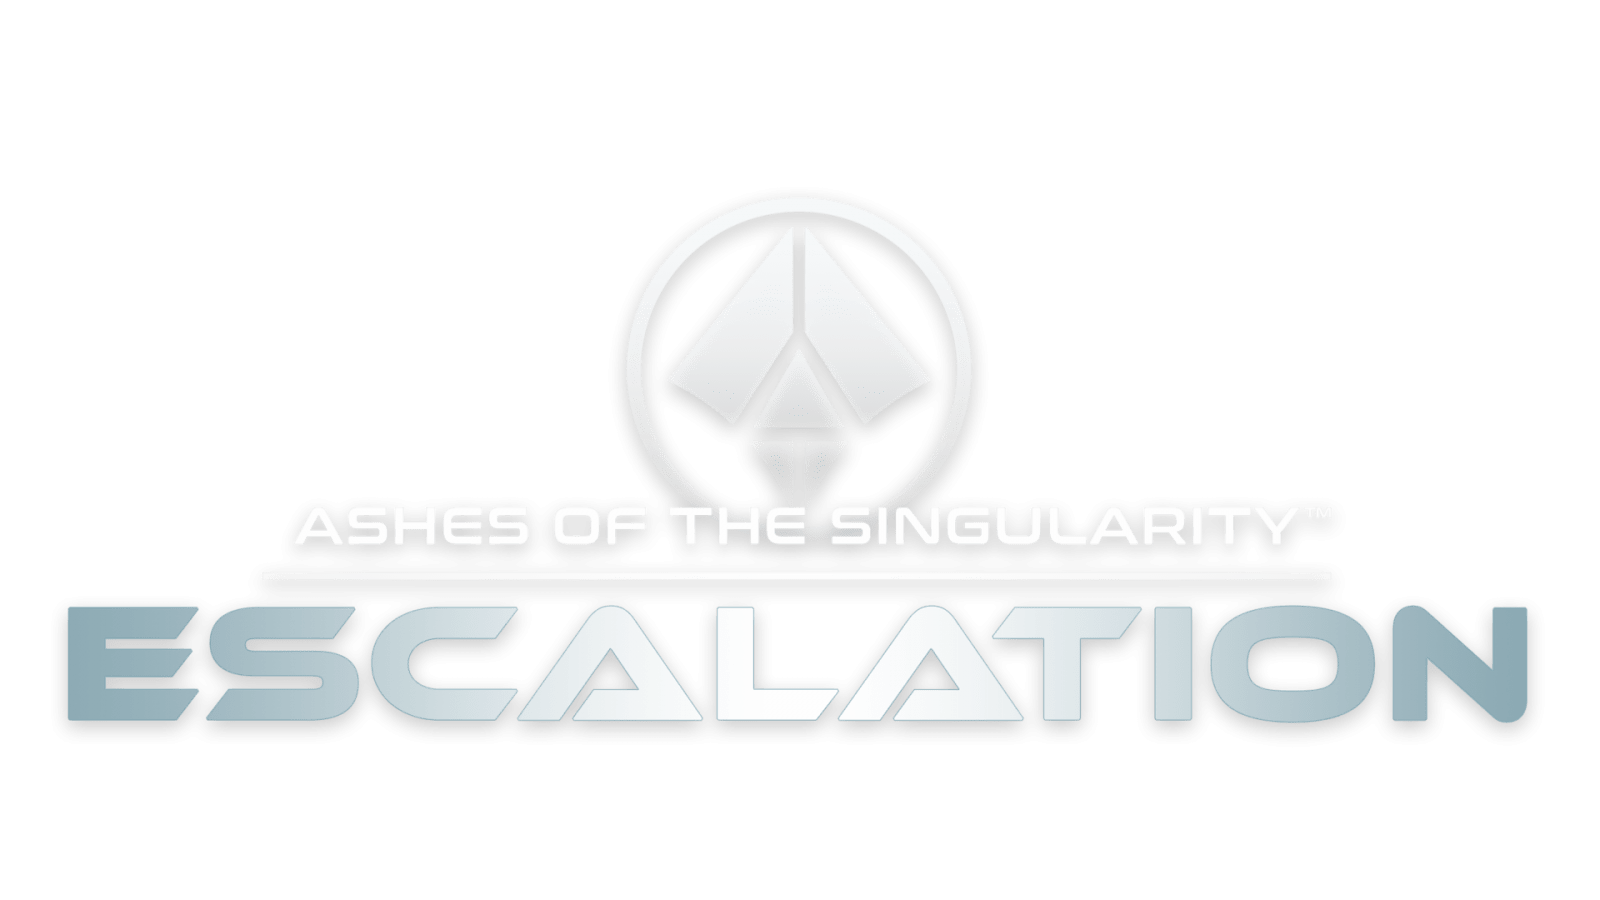 Ashes of the Singularity: Escalation Receiving Hunter/Prey